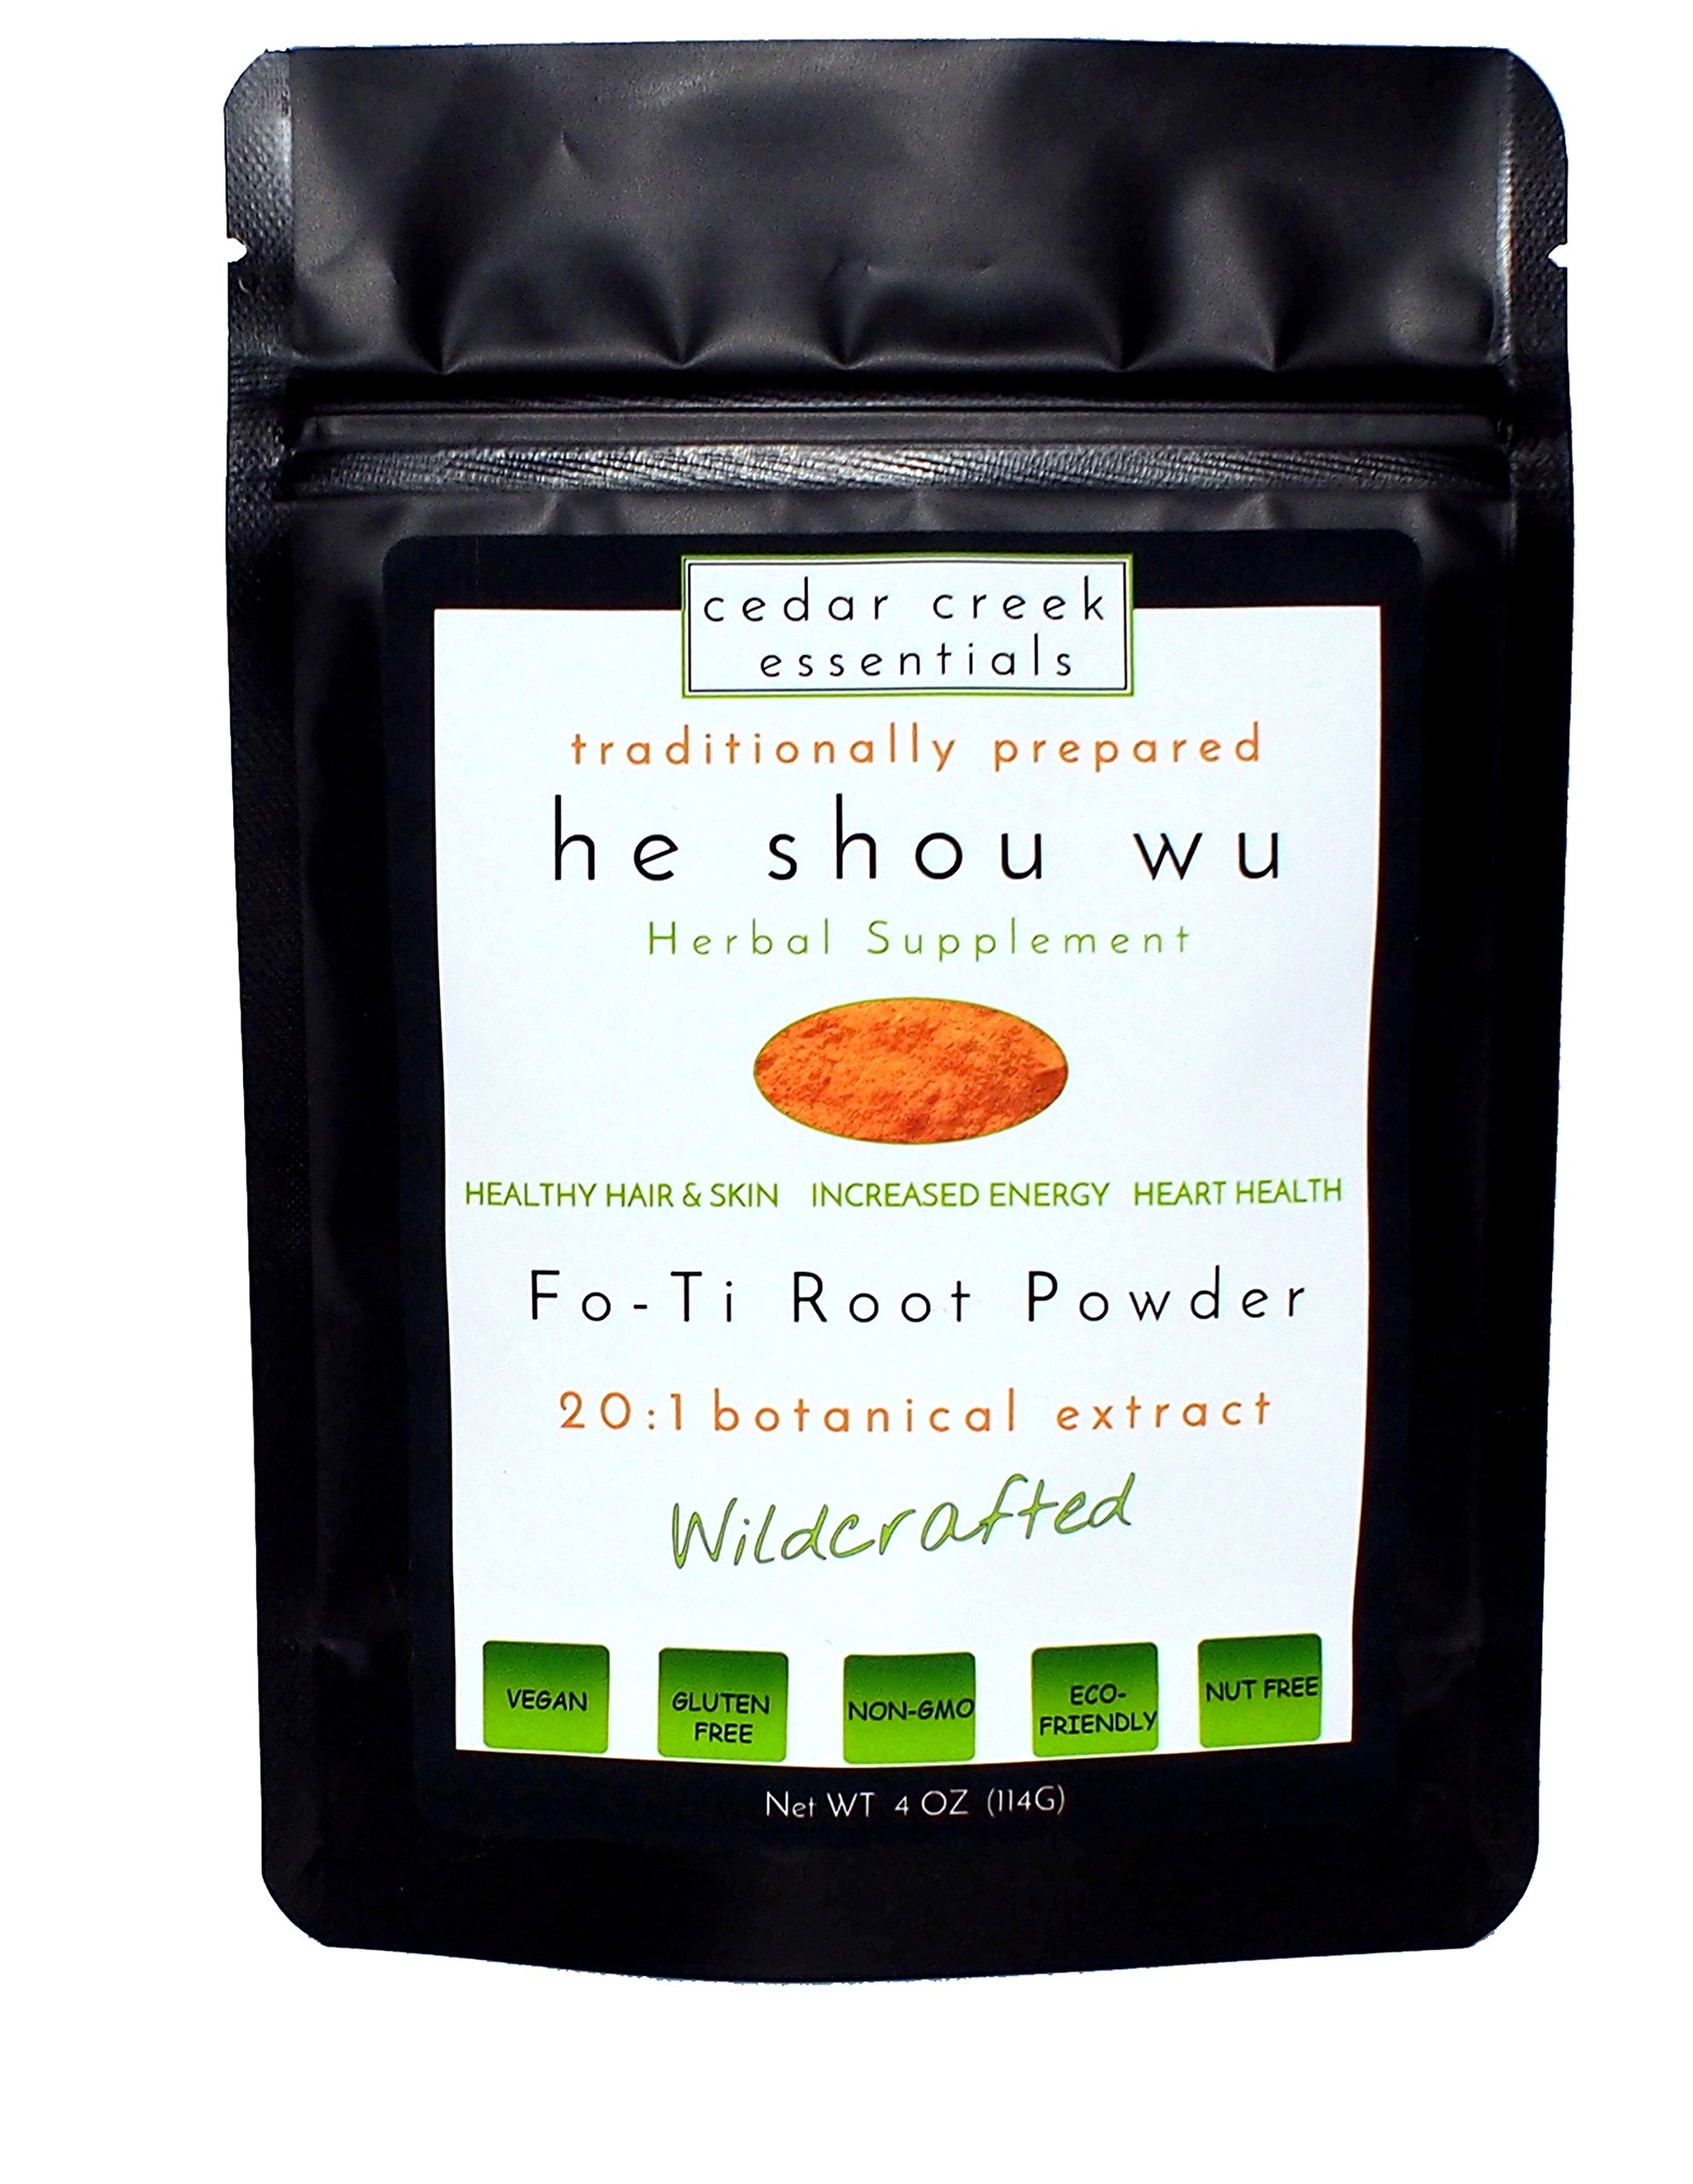 Fo-ti Root Extract Powder - He Shou Wu 20:1 Botanical Extract Concentrate - Traditionally Prepared - 100% Natural Herbal Supplement (4oz)